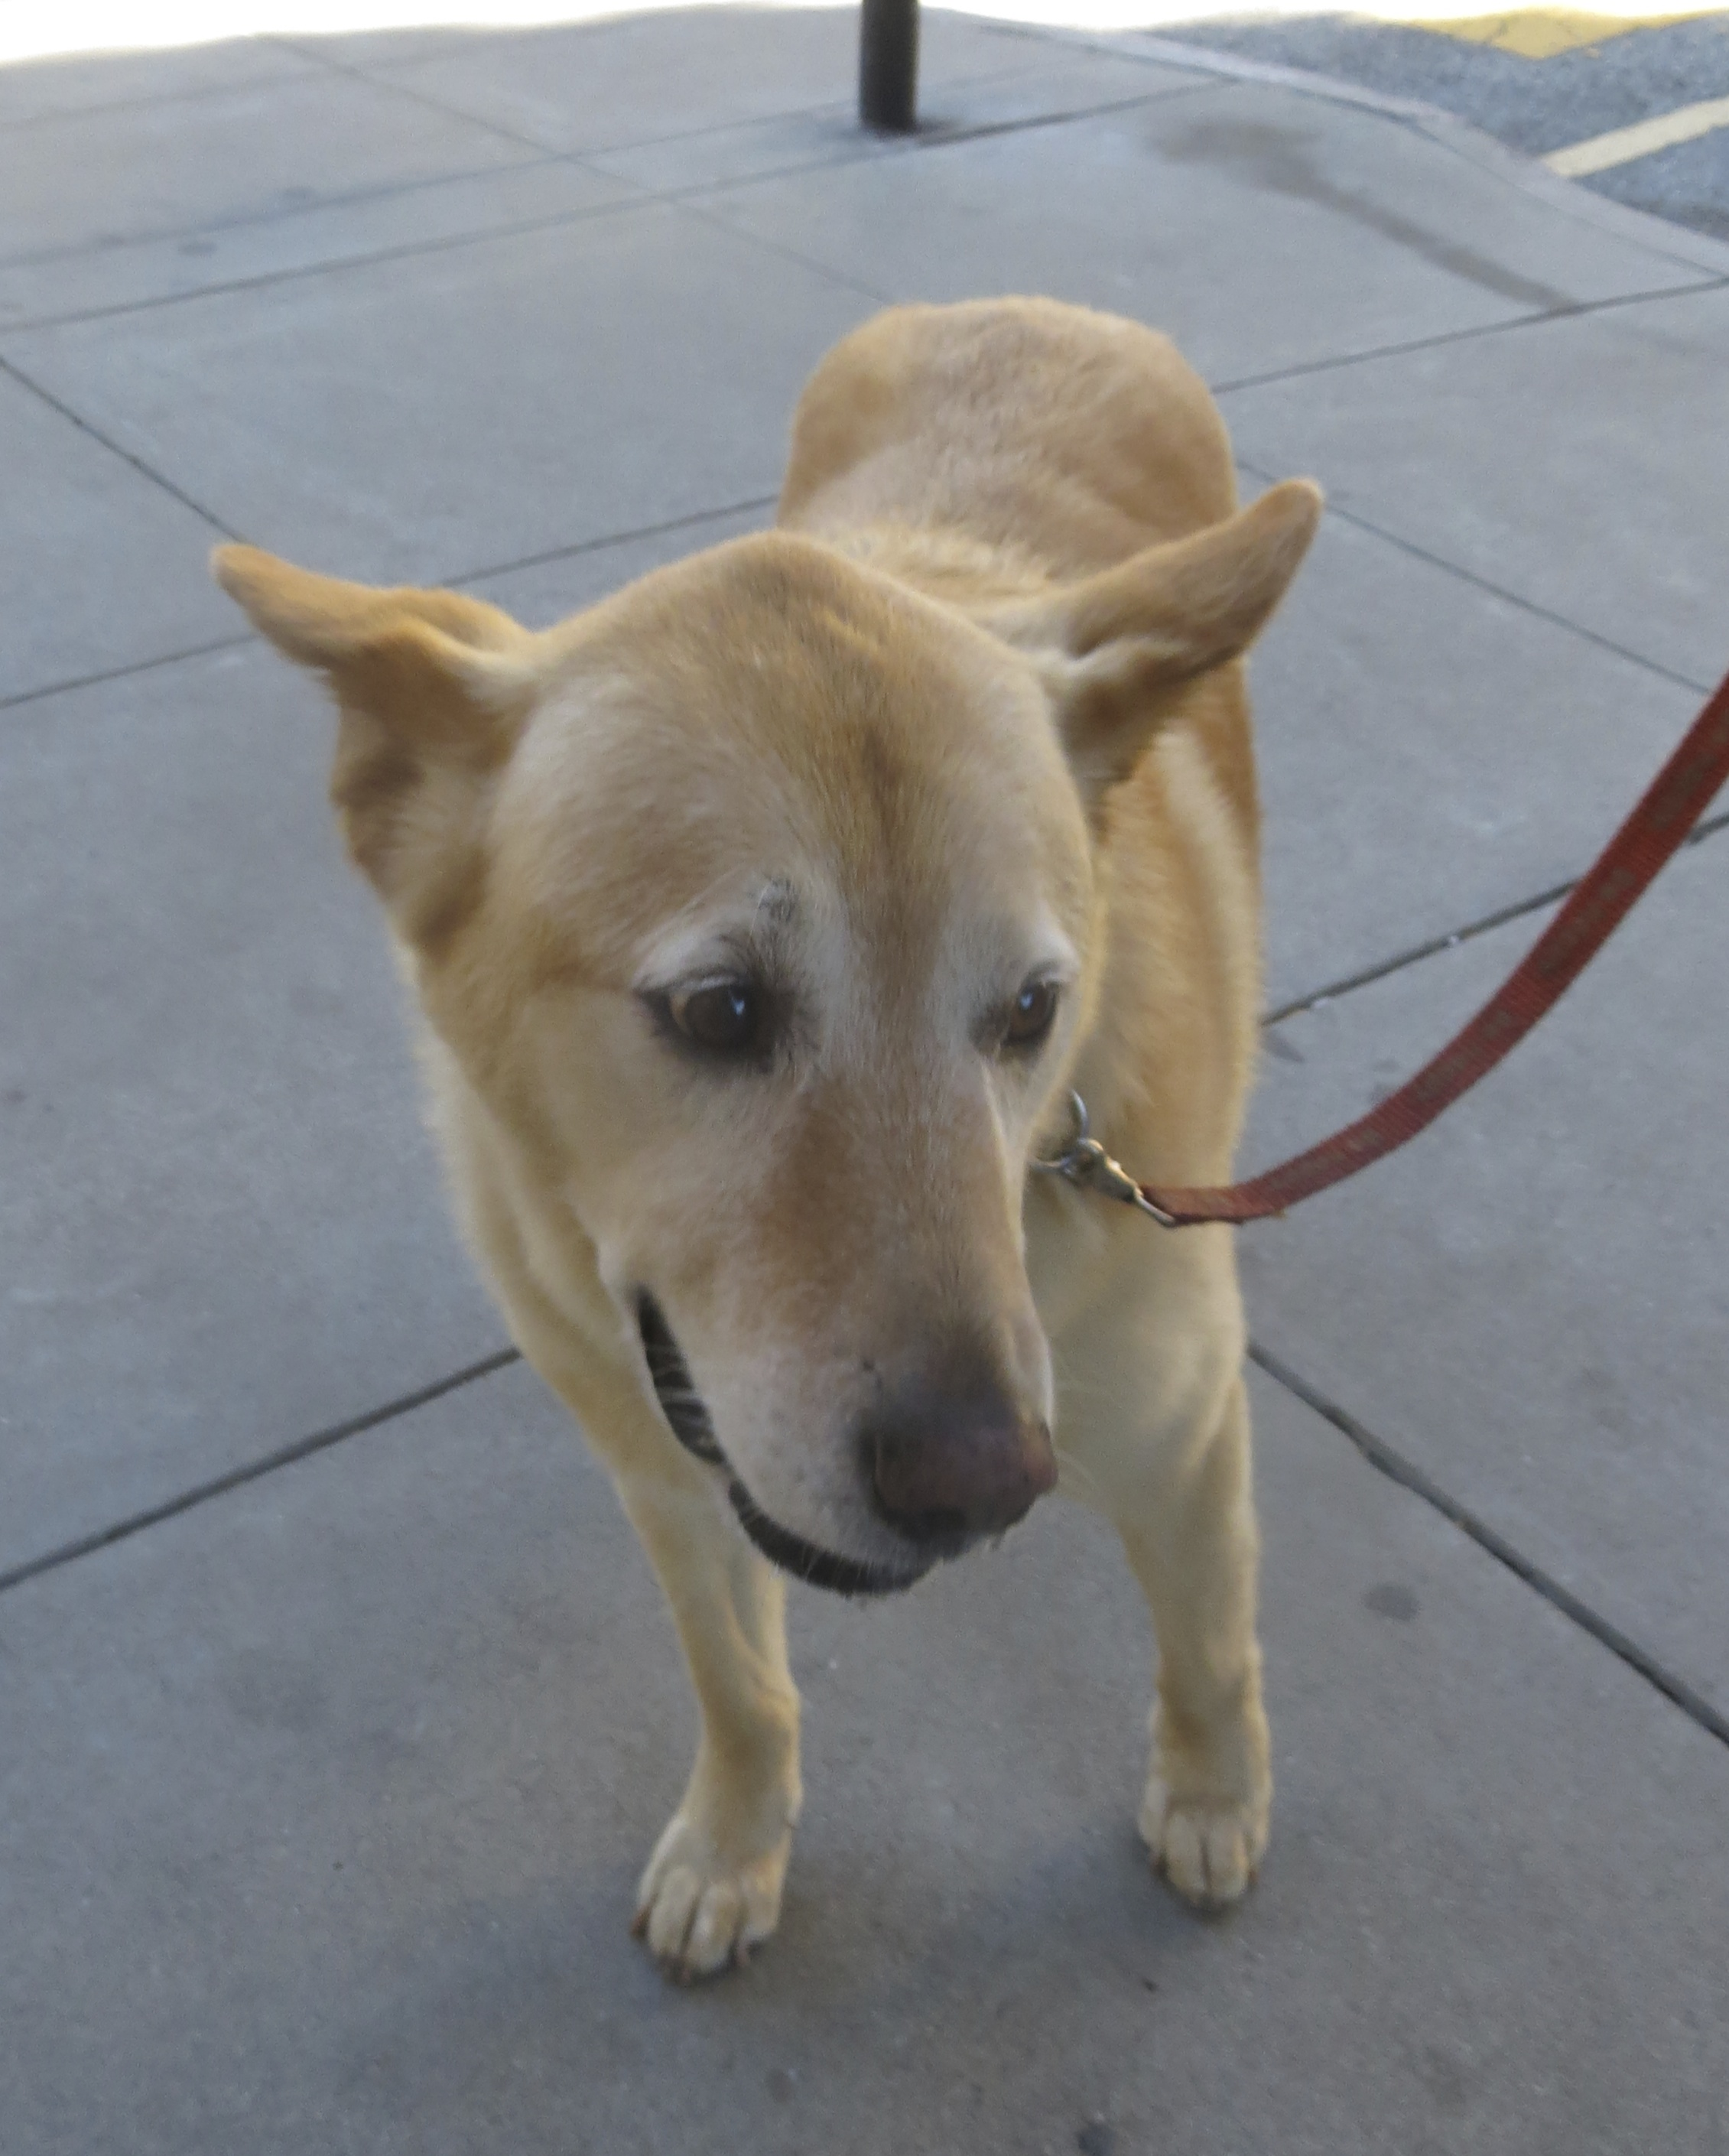 Mixed-Breed Dog That Looks like a Lab With Pointy Ears